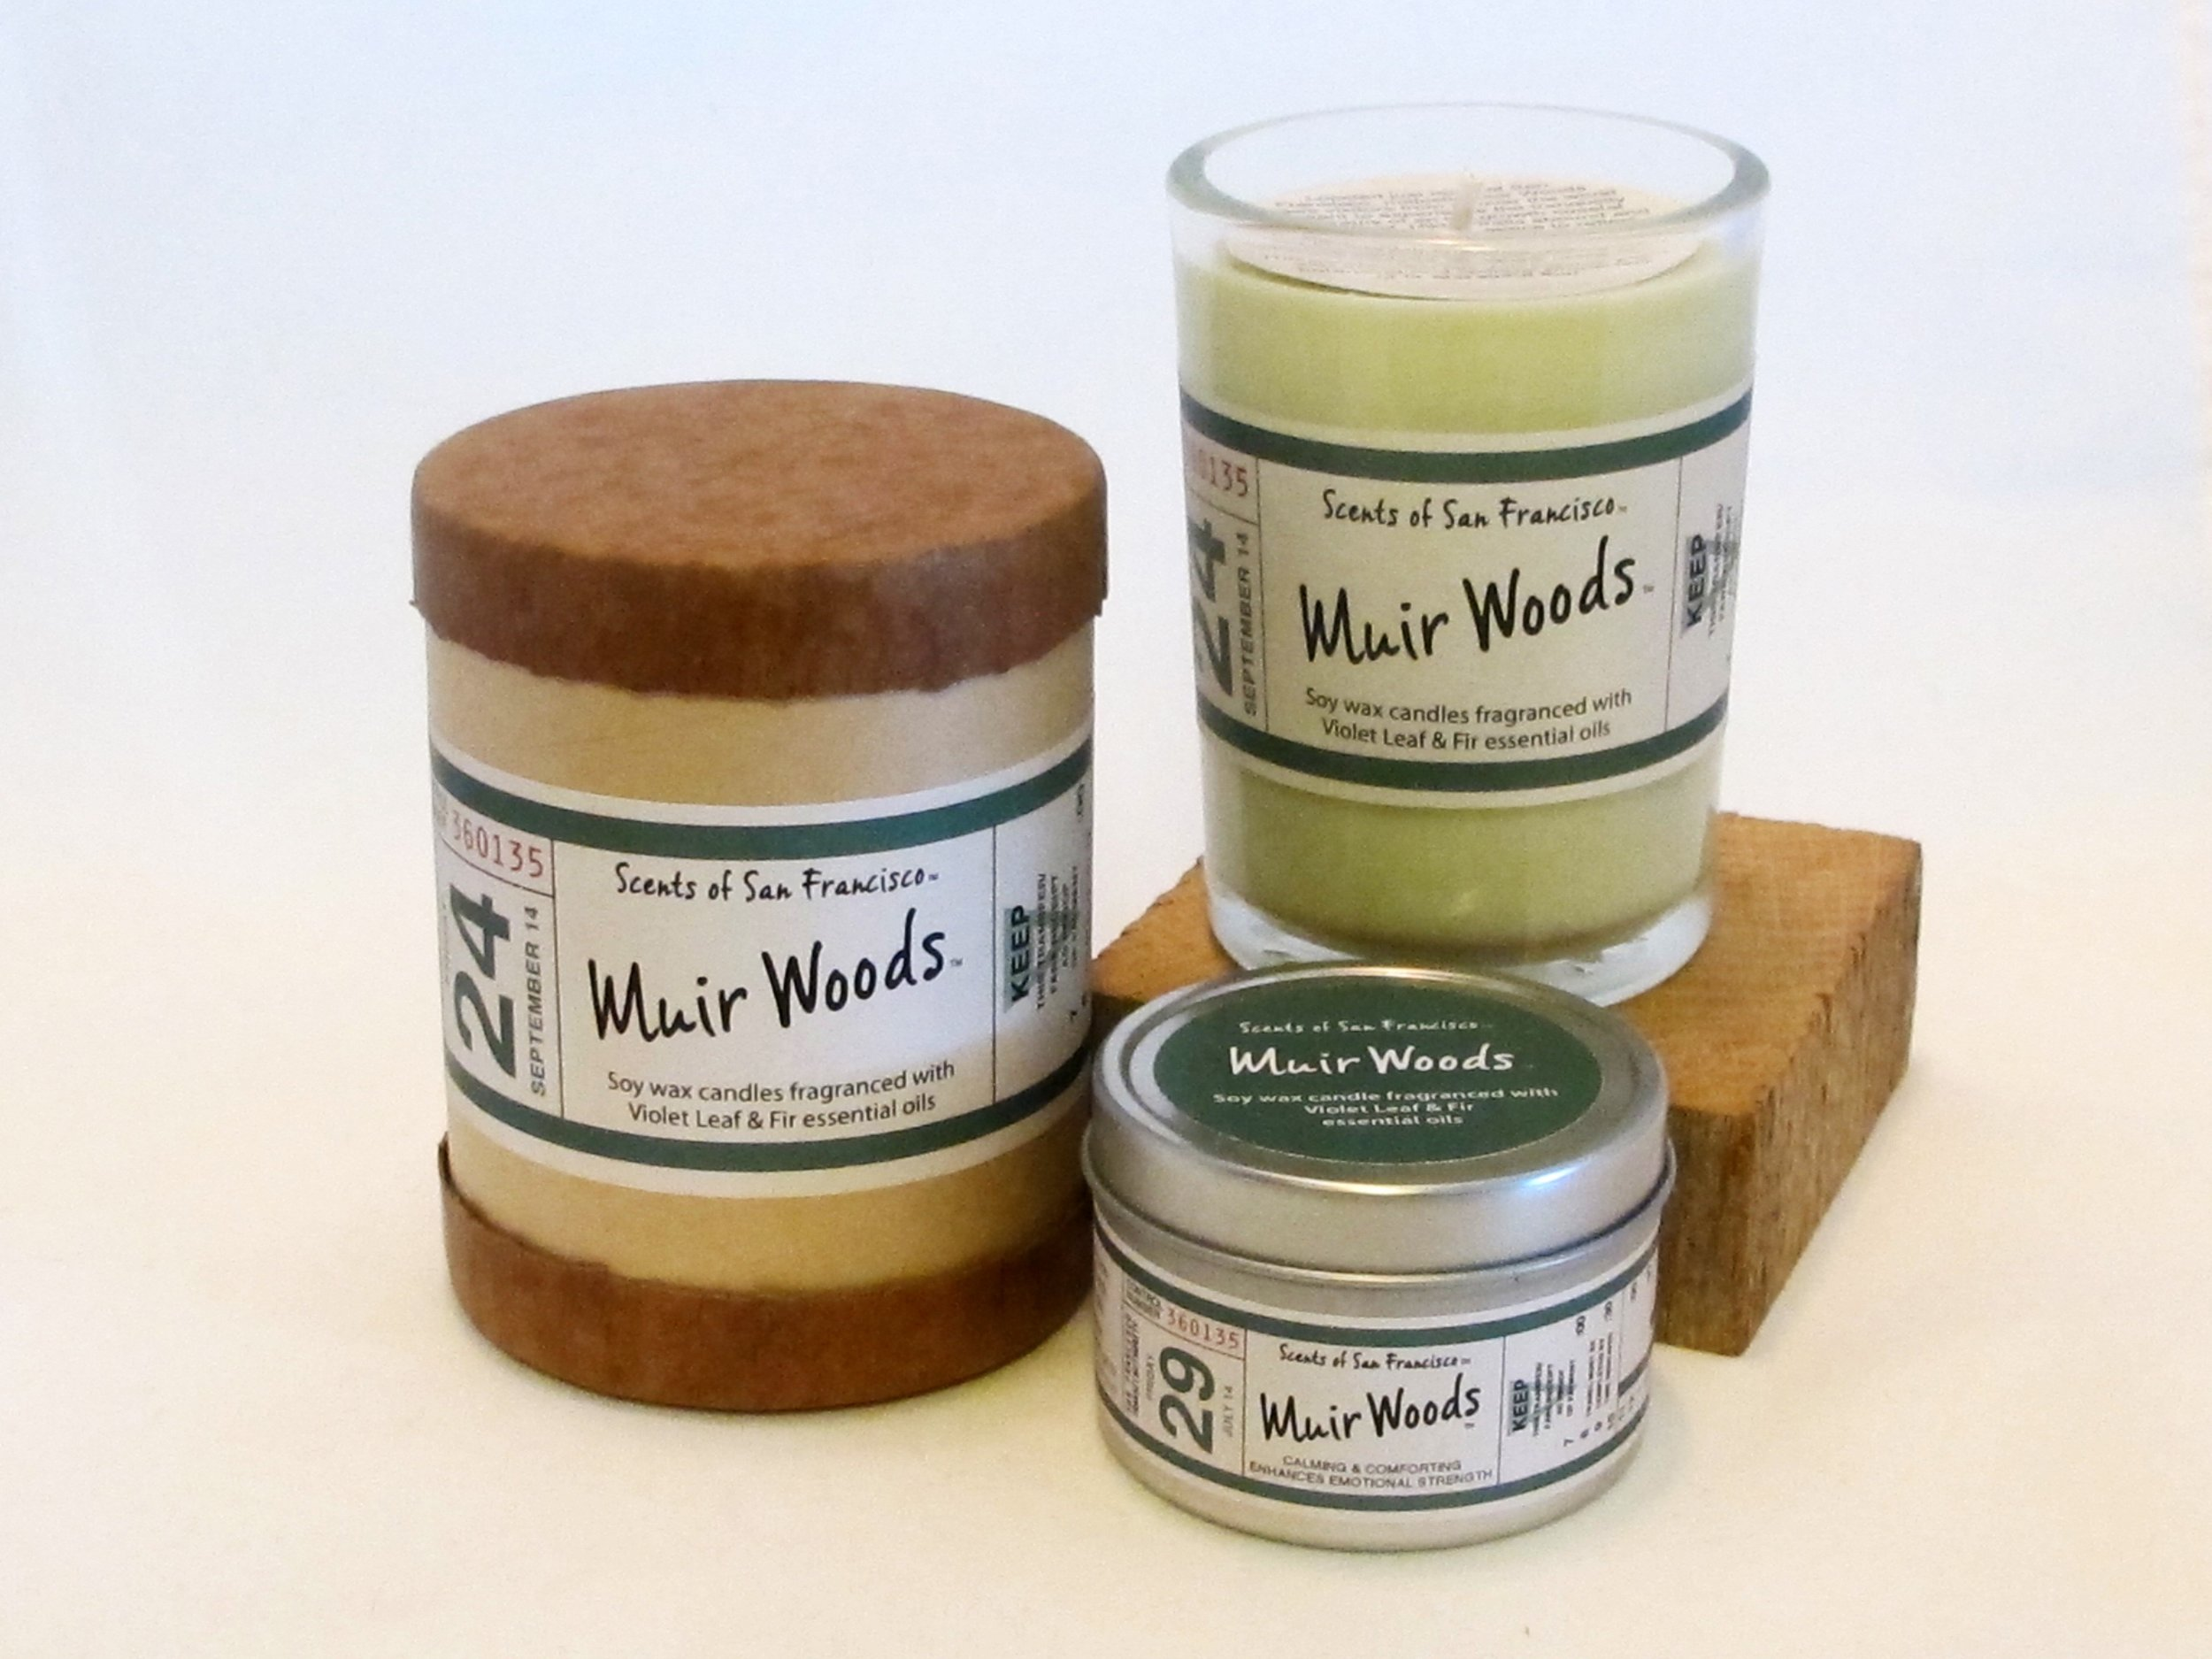 You may also like: - Scents of San Francisco Muir Woods Candle